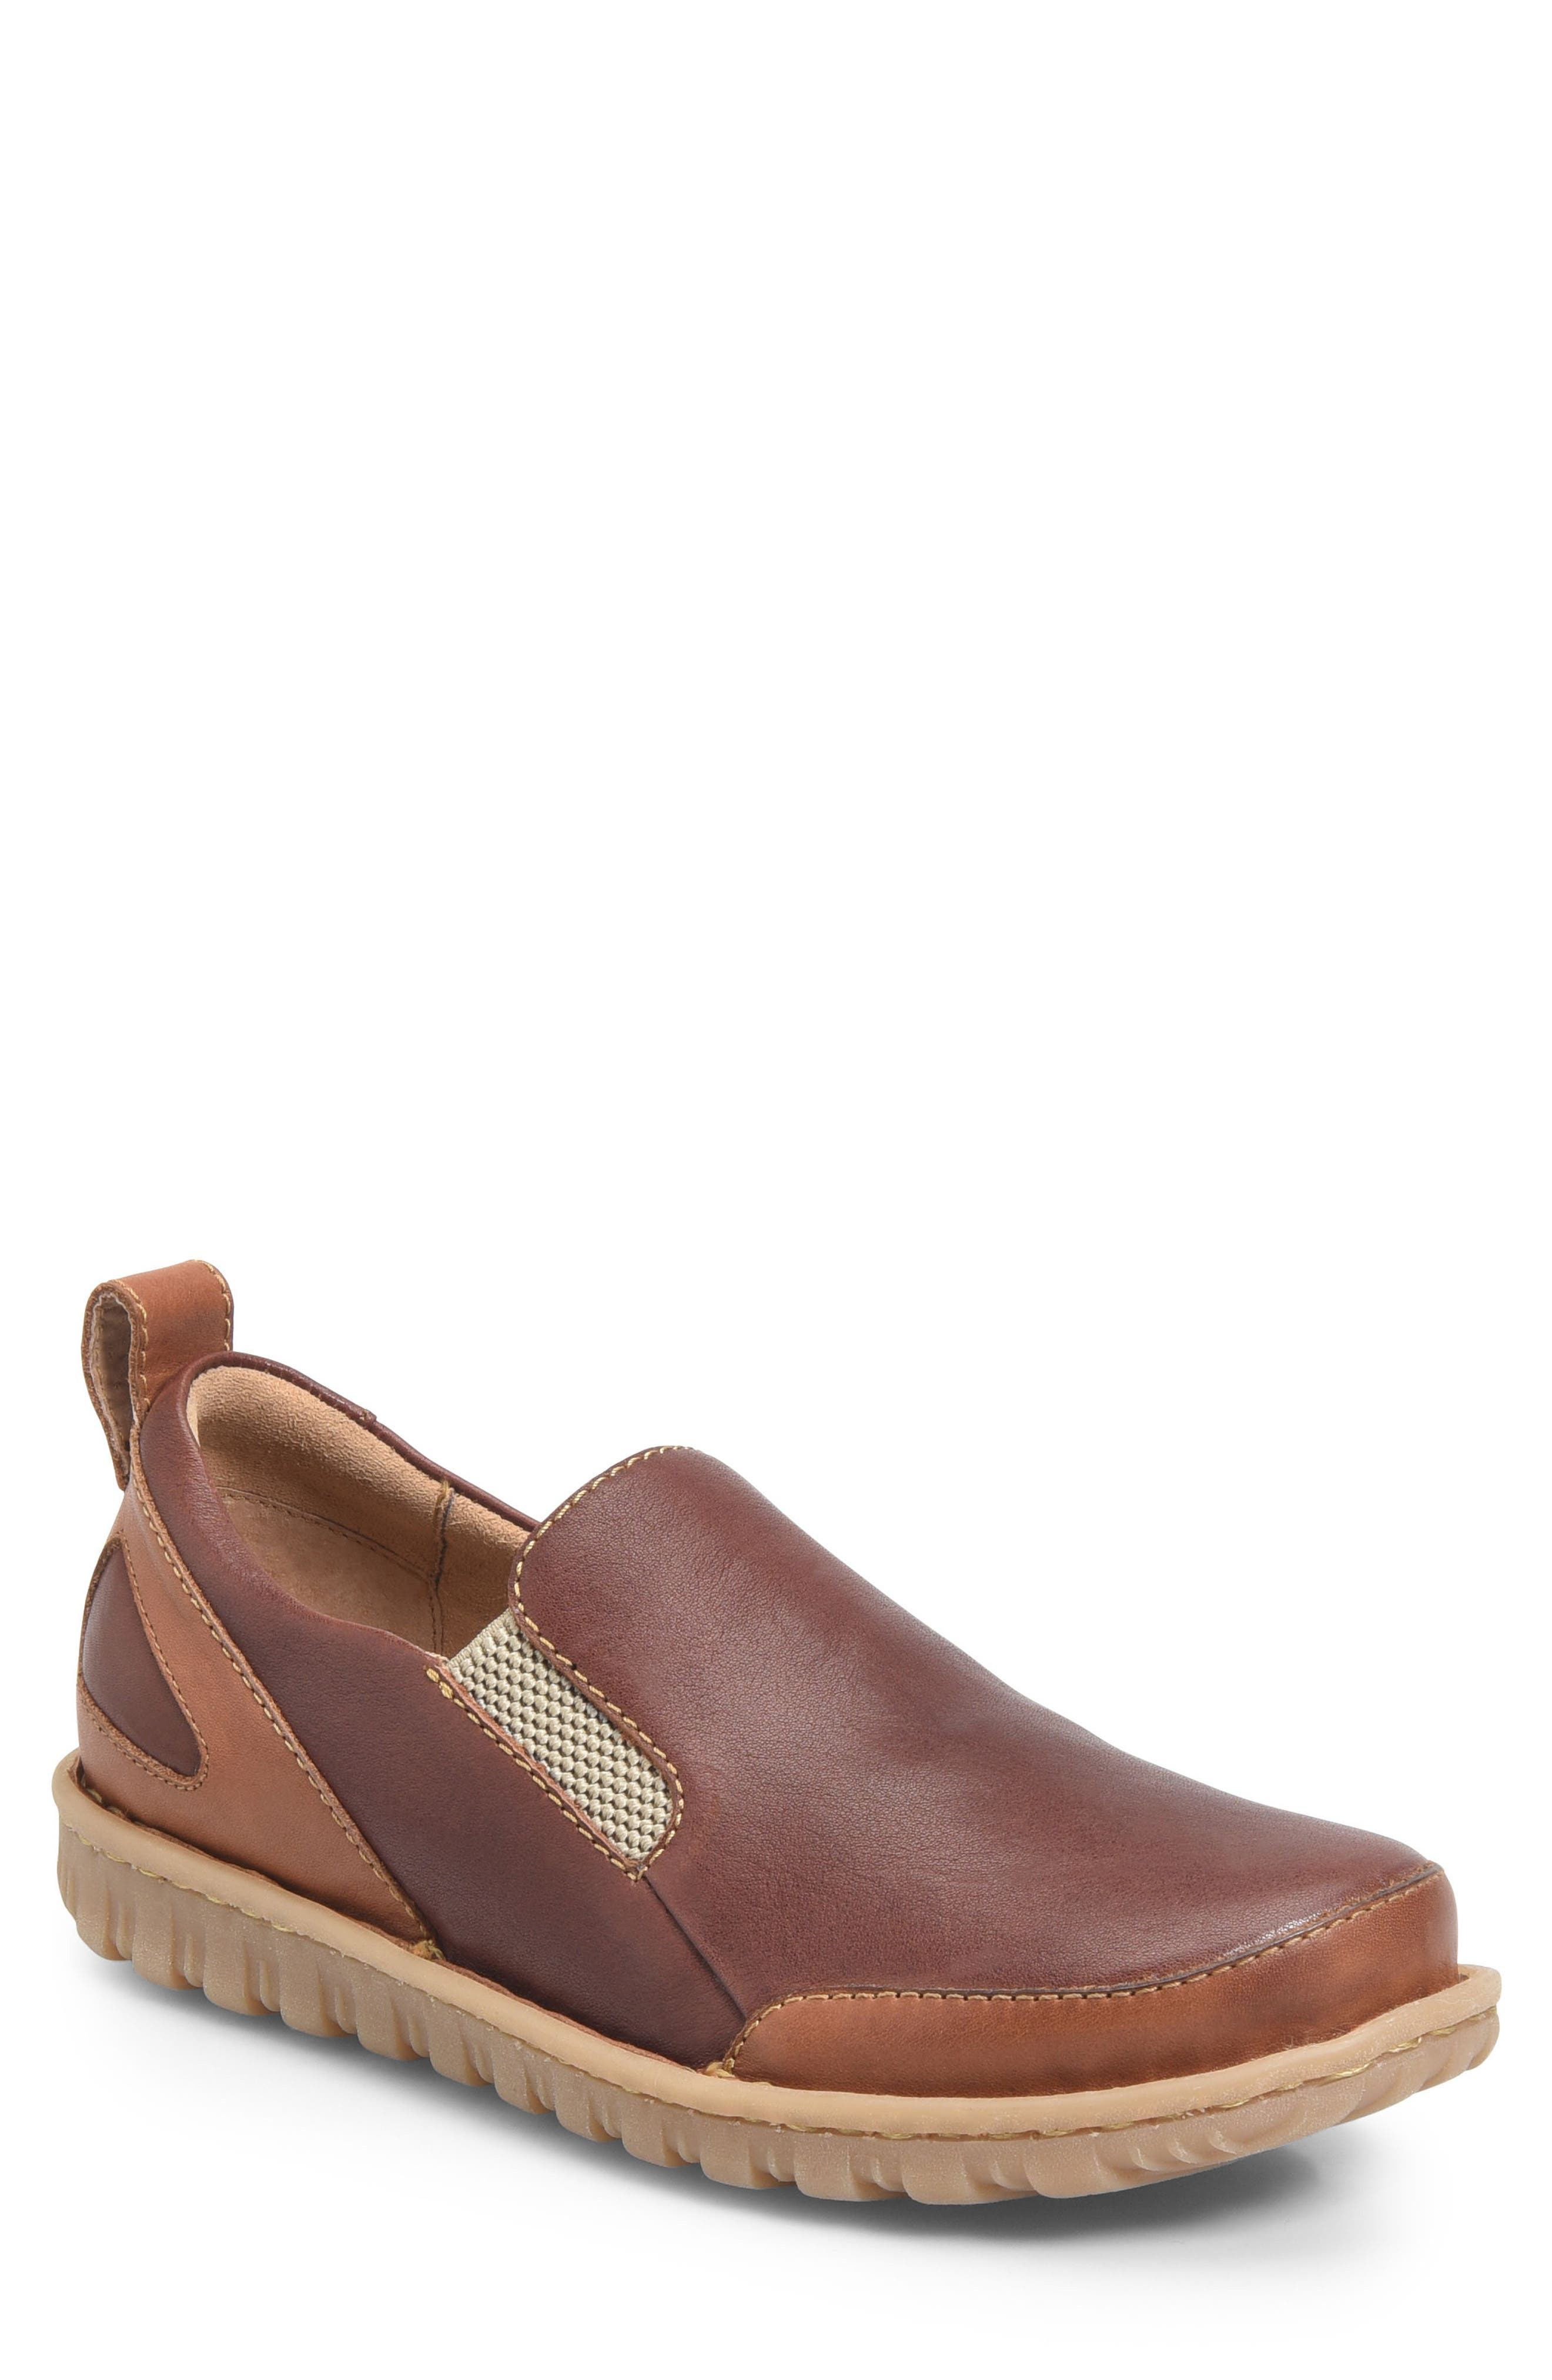 Pepper Slip-On,                             Main thumbnail 1, color,                             Brown/ Rust Leather